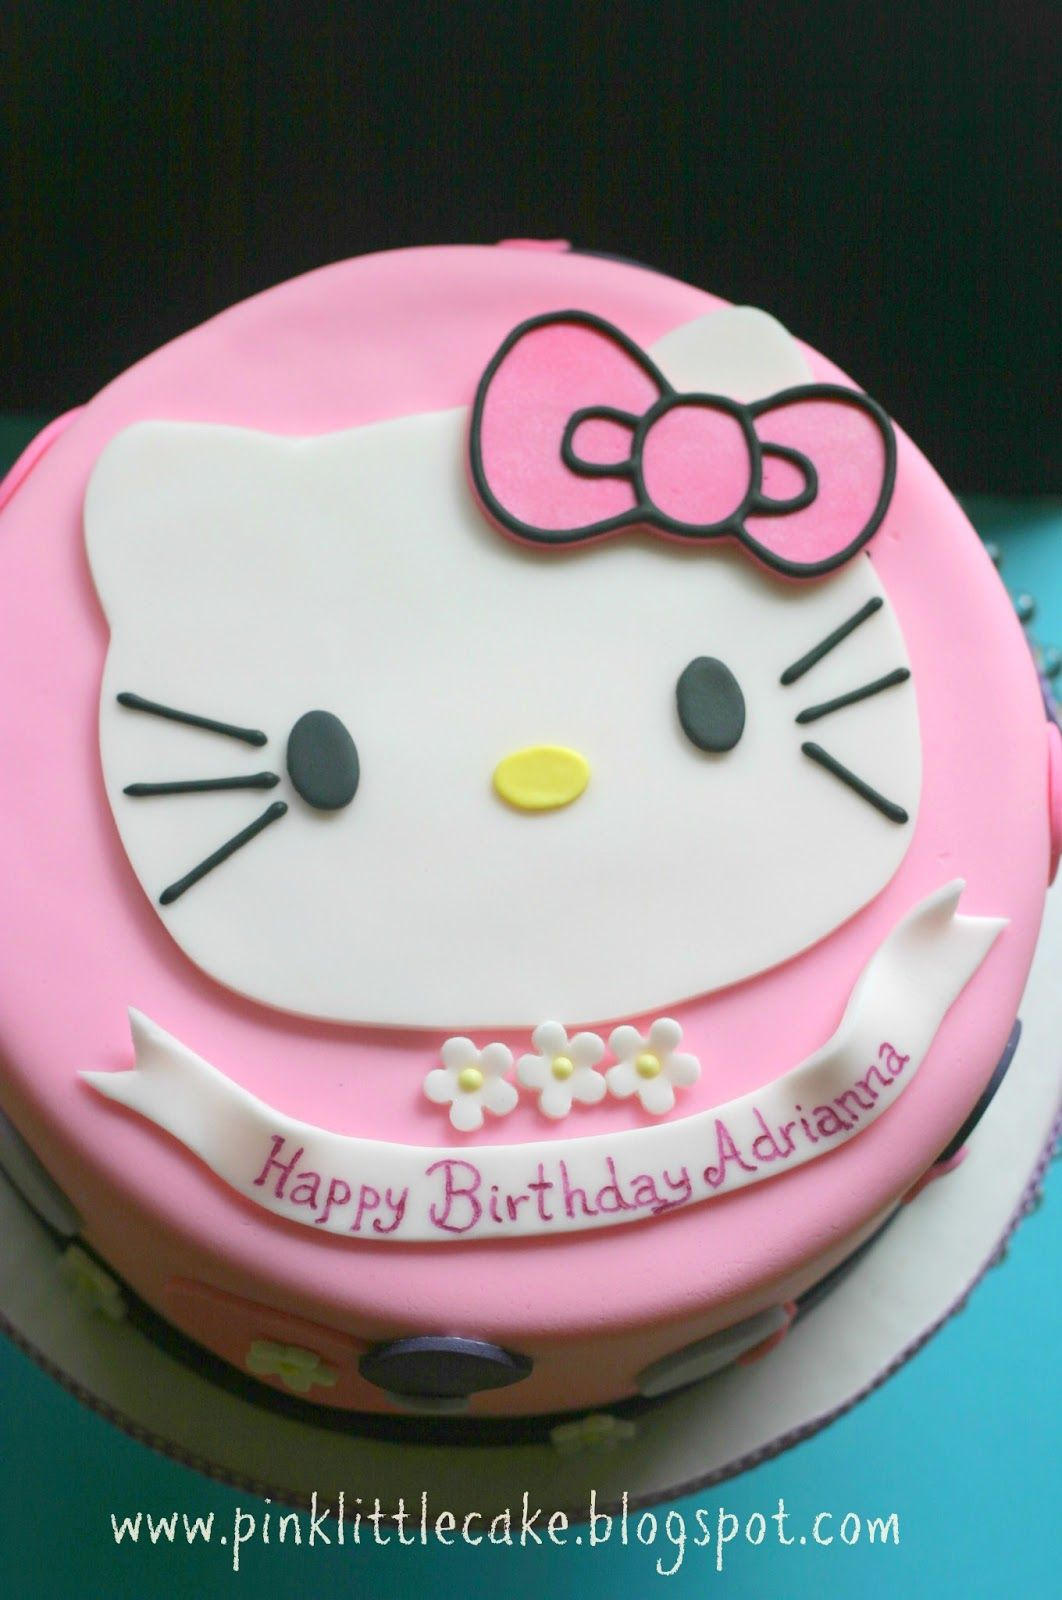 birthday cake 7 years old girl Google Search Food Pinterest